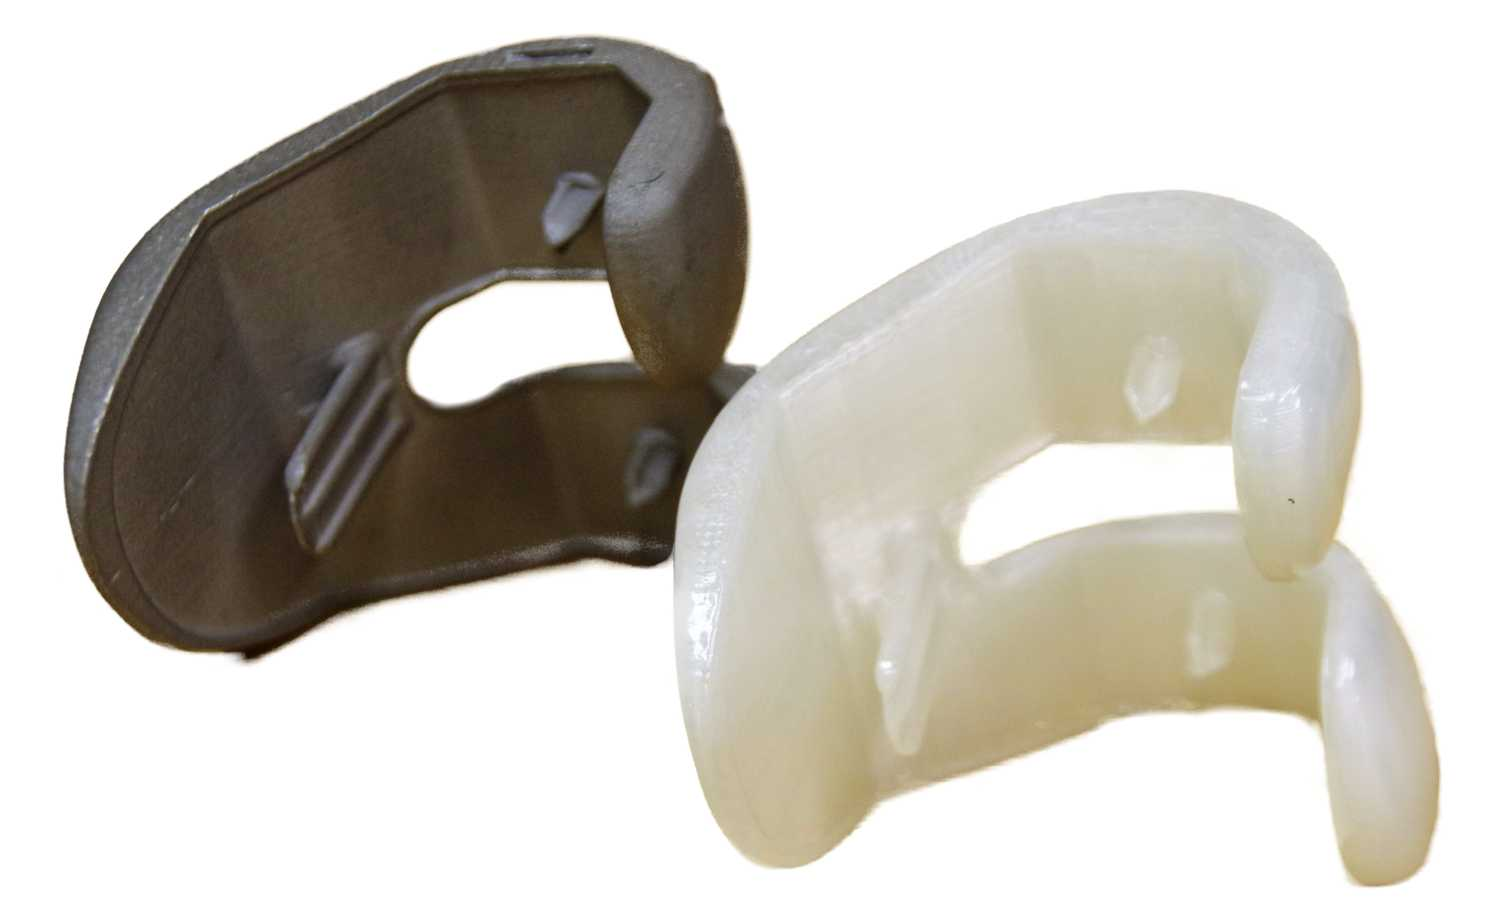 Investment cast knee joint by Plural Additive Manufacturing with 3ntr